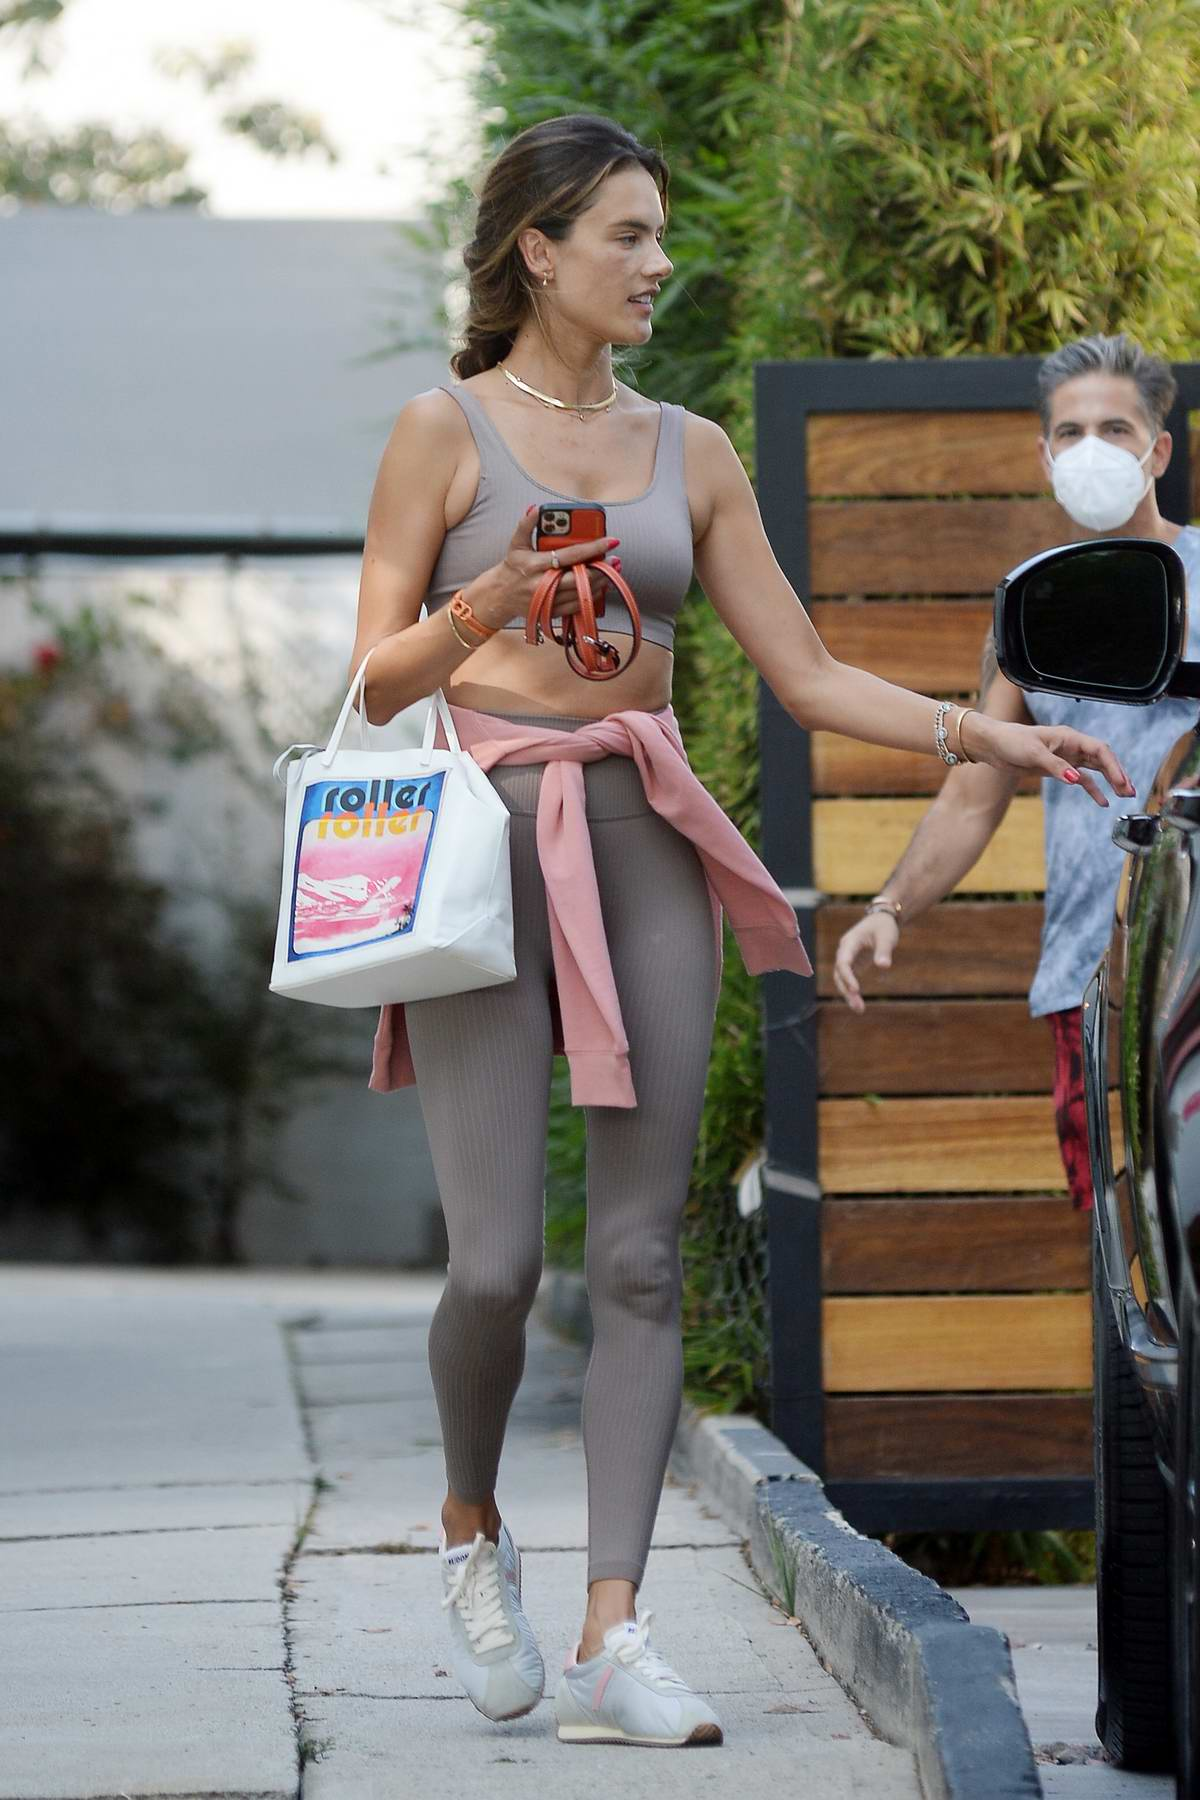 Alessandra Ambrosio shows off her toned figure in a striped workout top and leggings as she leaves a gym in Los Angeles